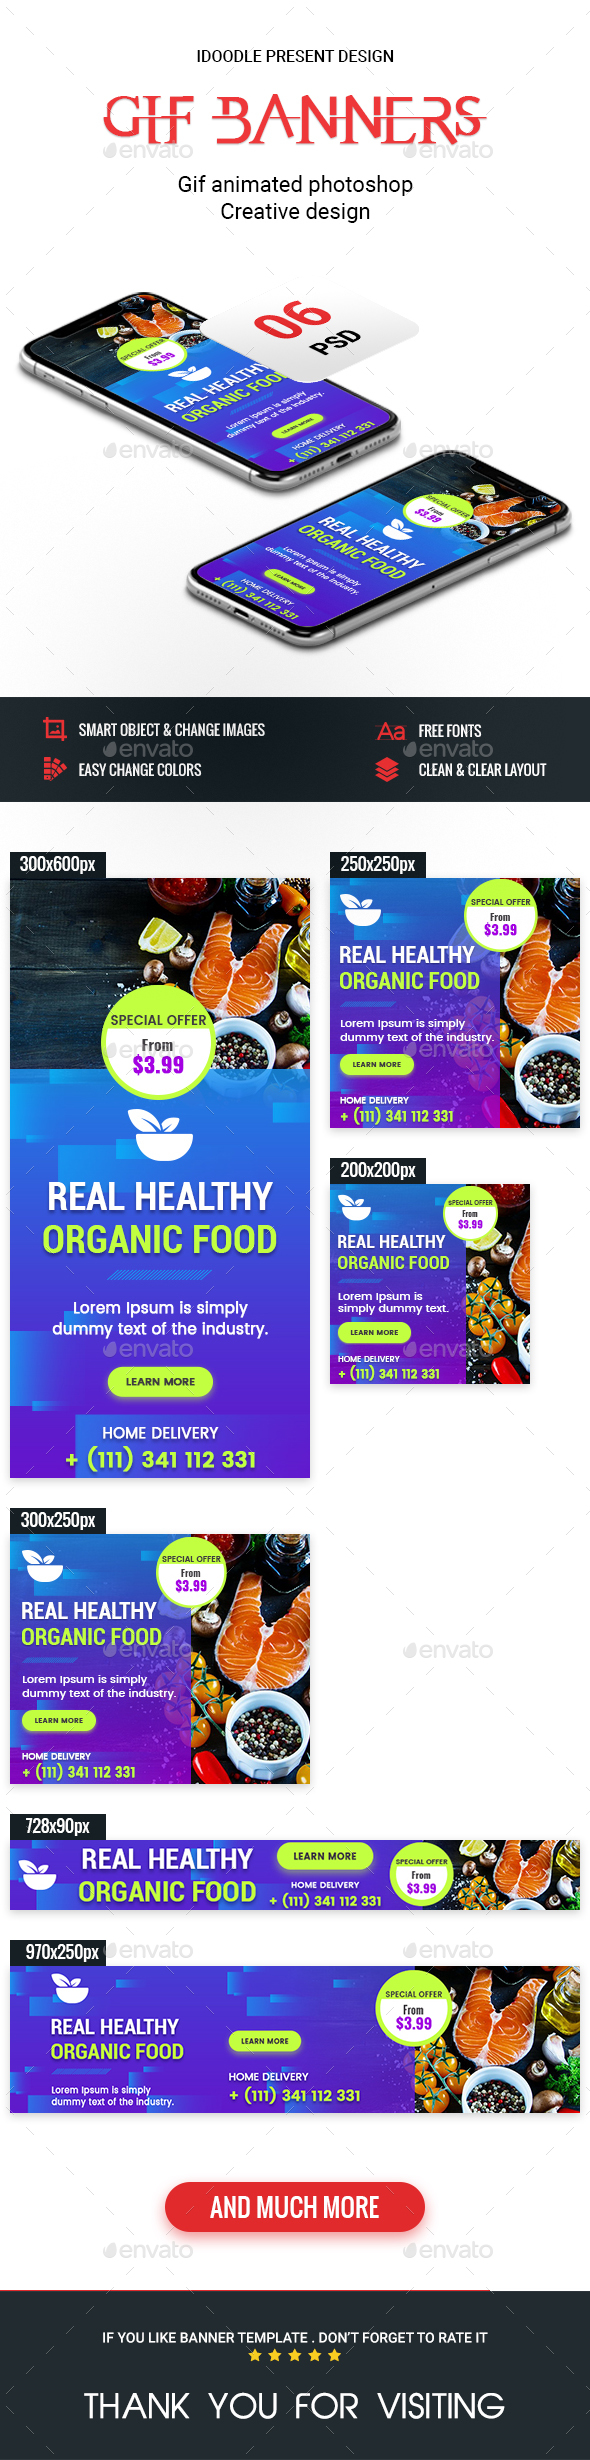 Animated GIF Banner Ads - Food & Restaurant Banners Ad - Banners & Ads Web Elements